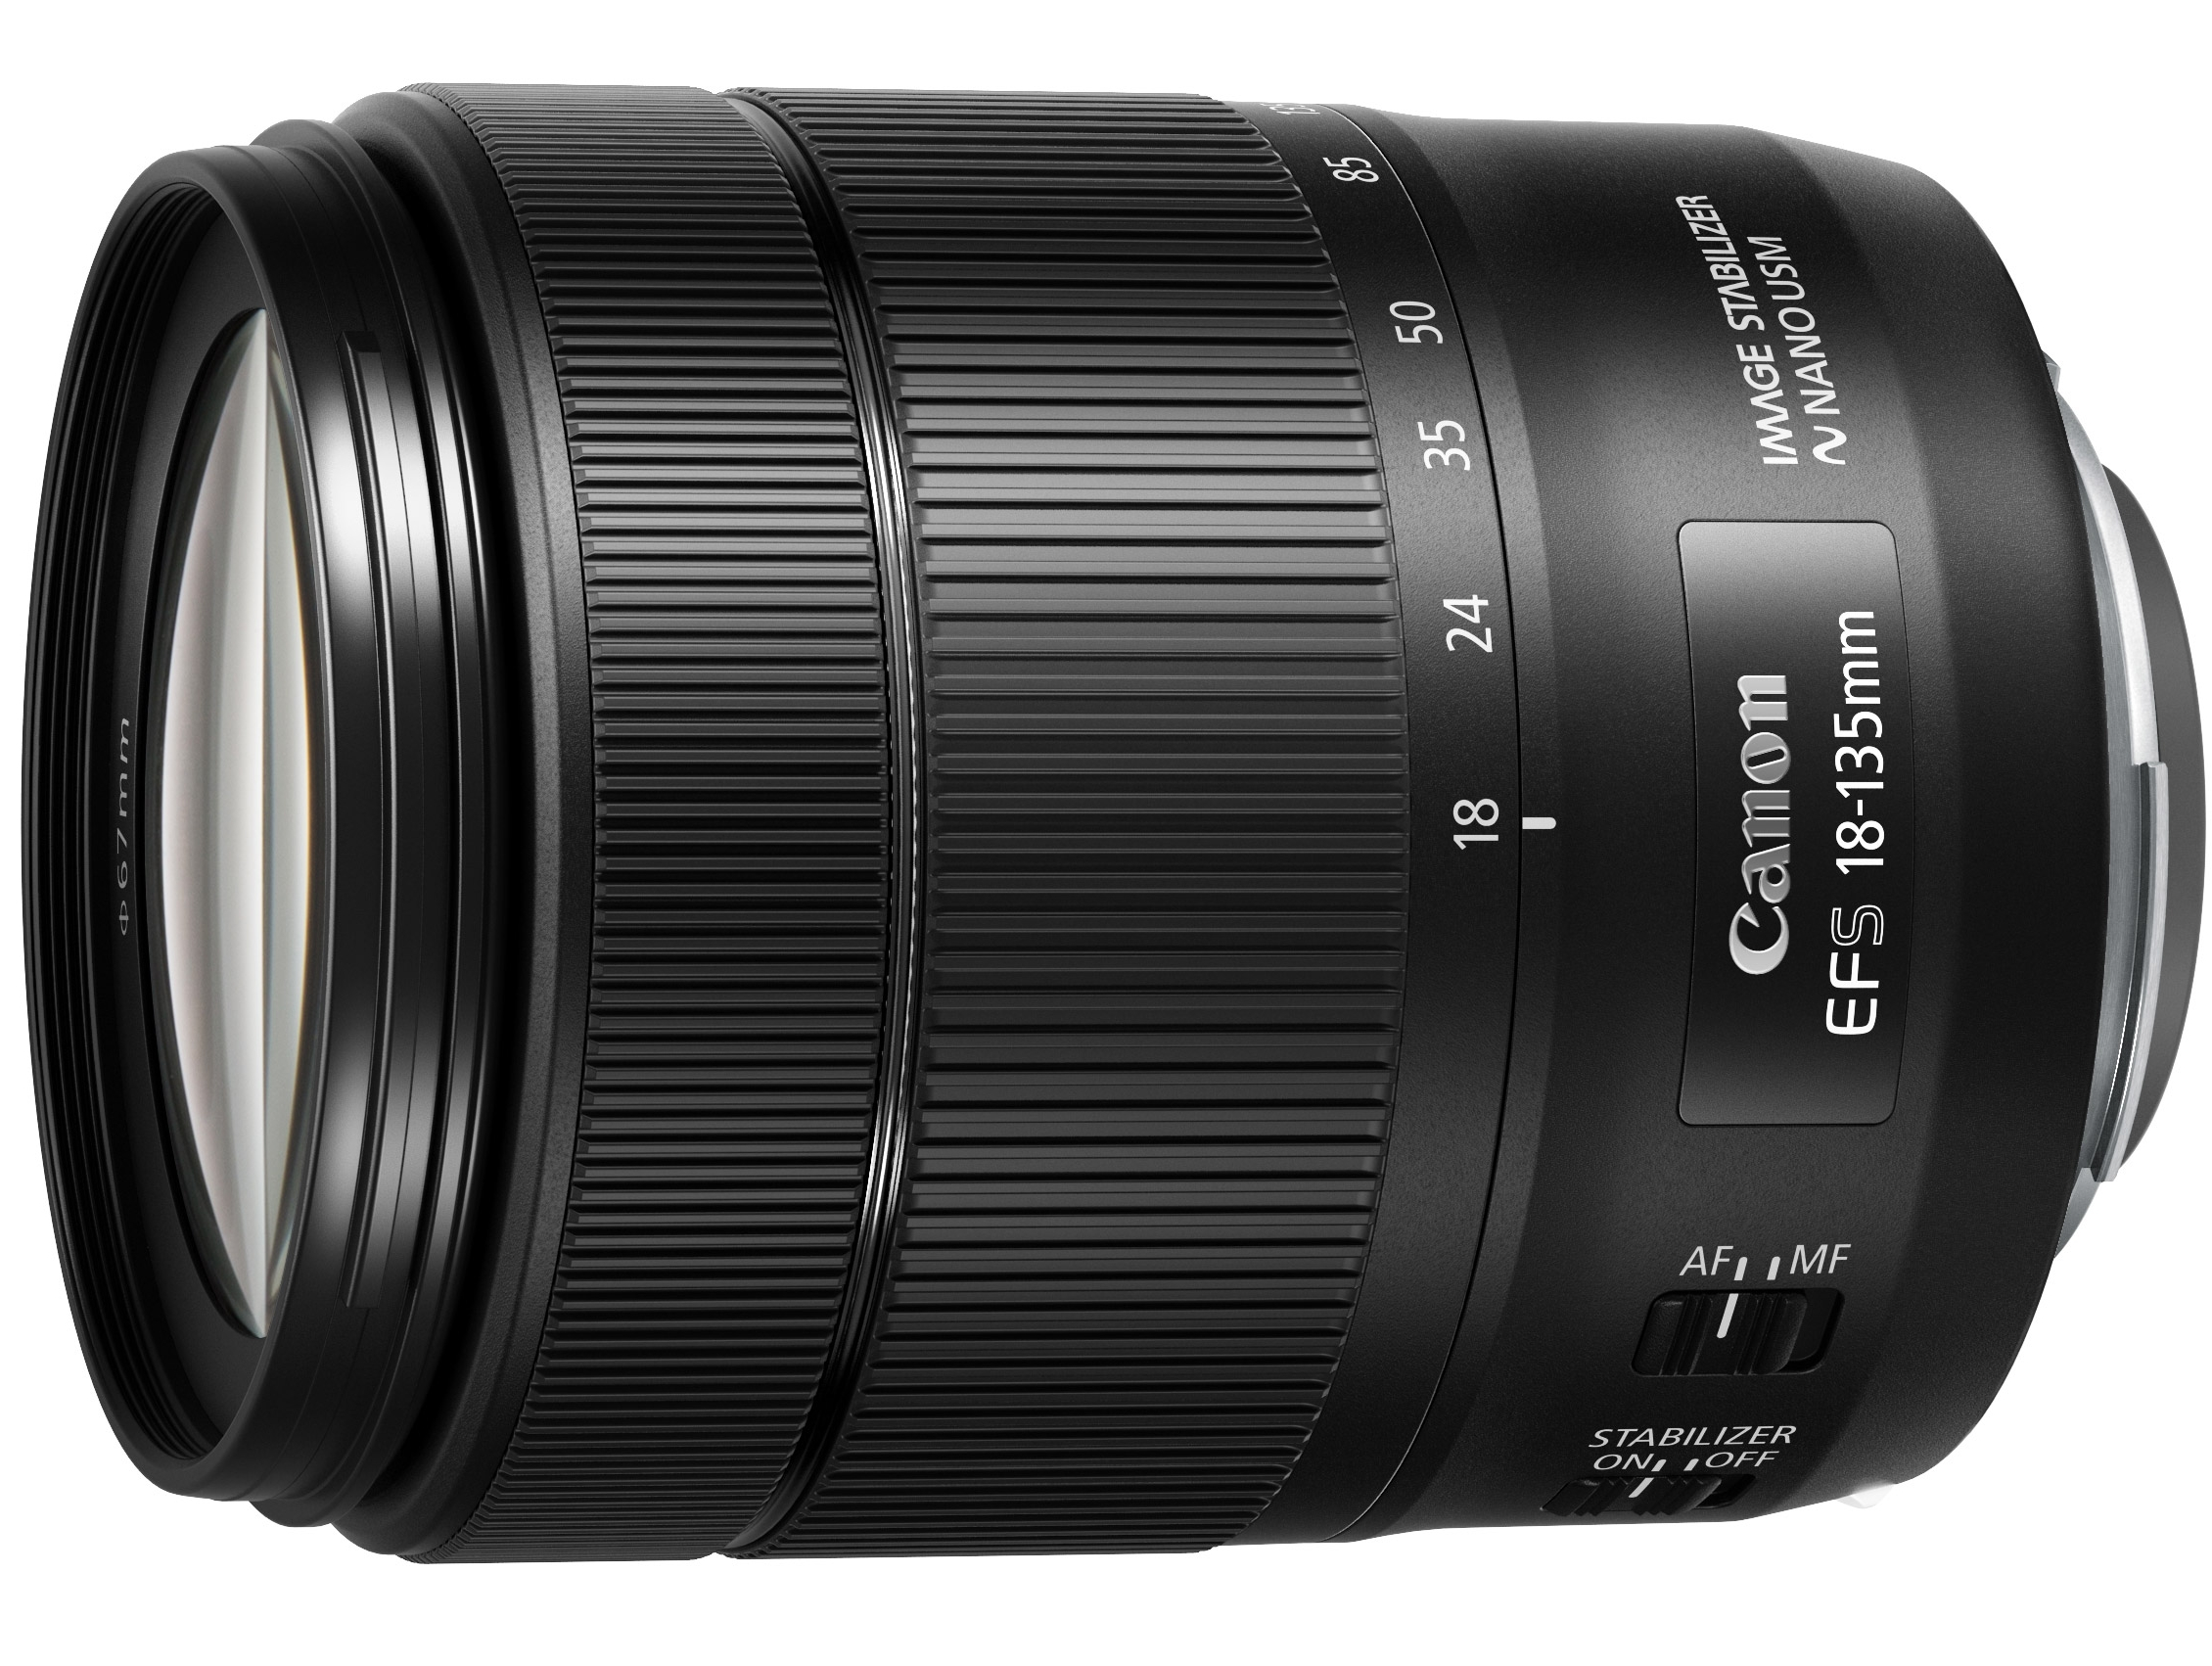 18-135mm - This is the versatile